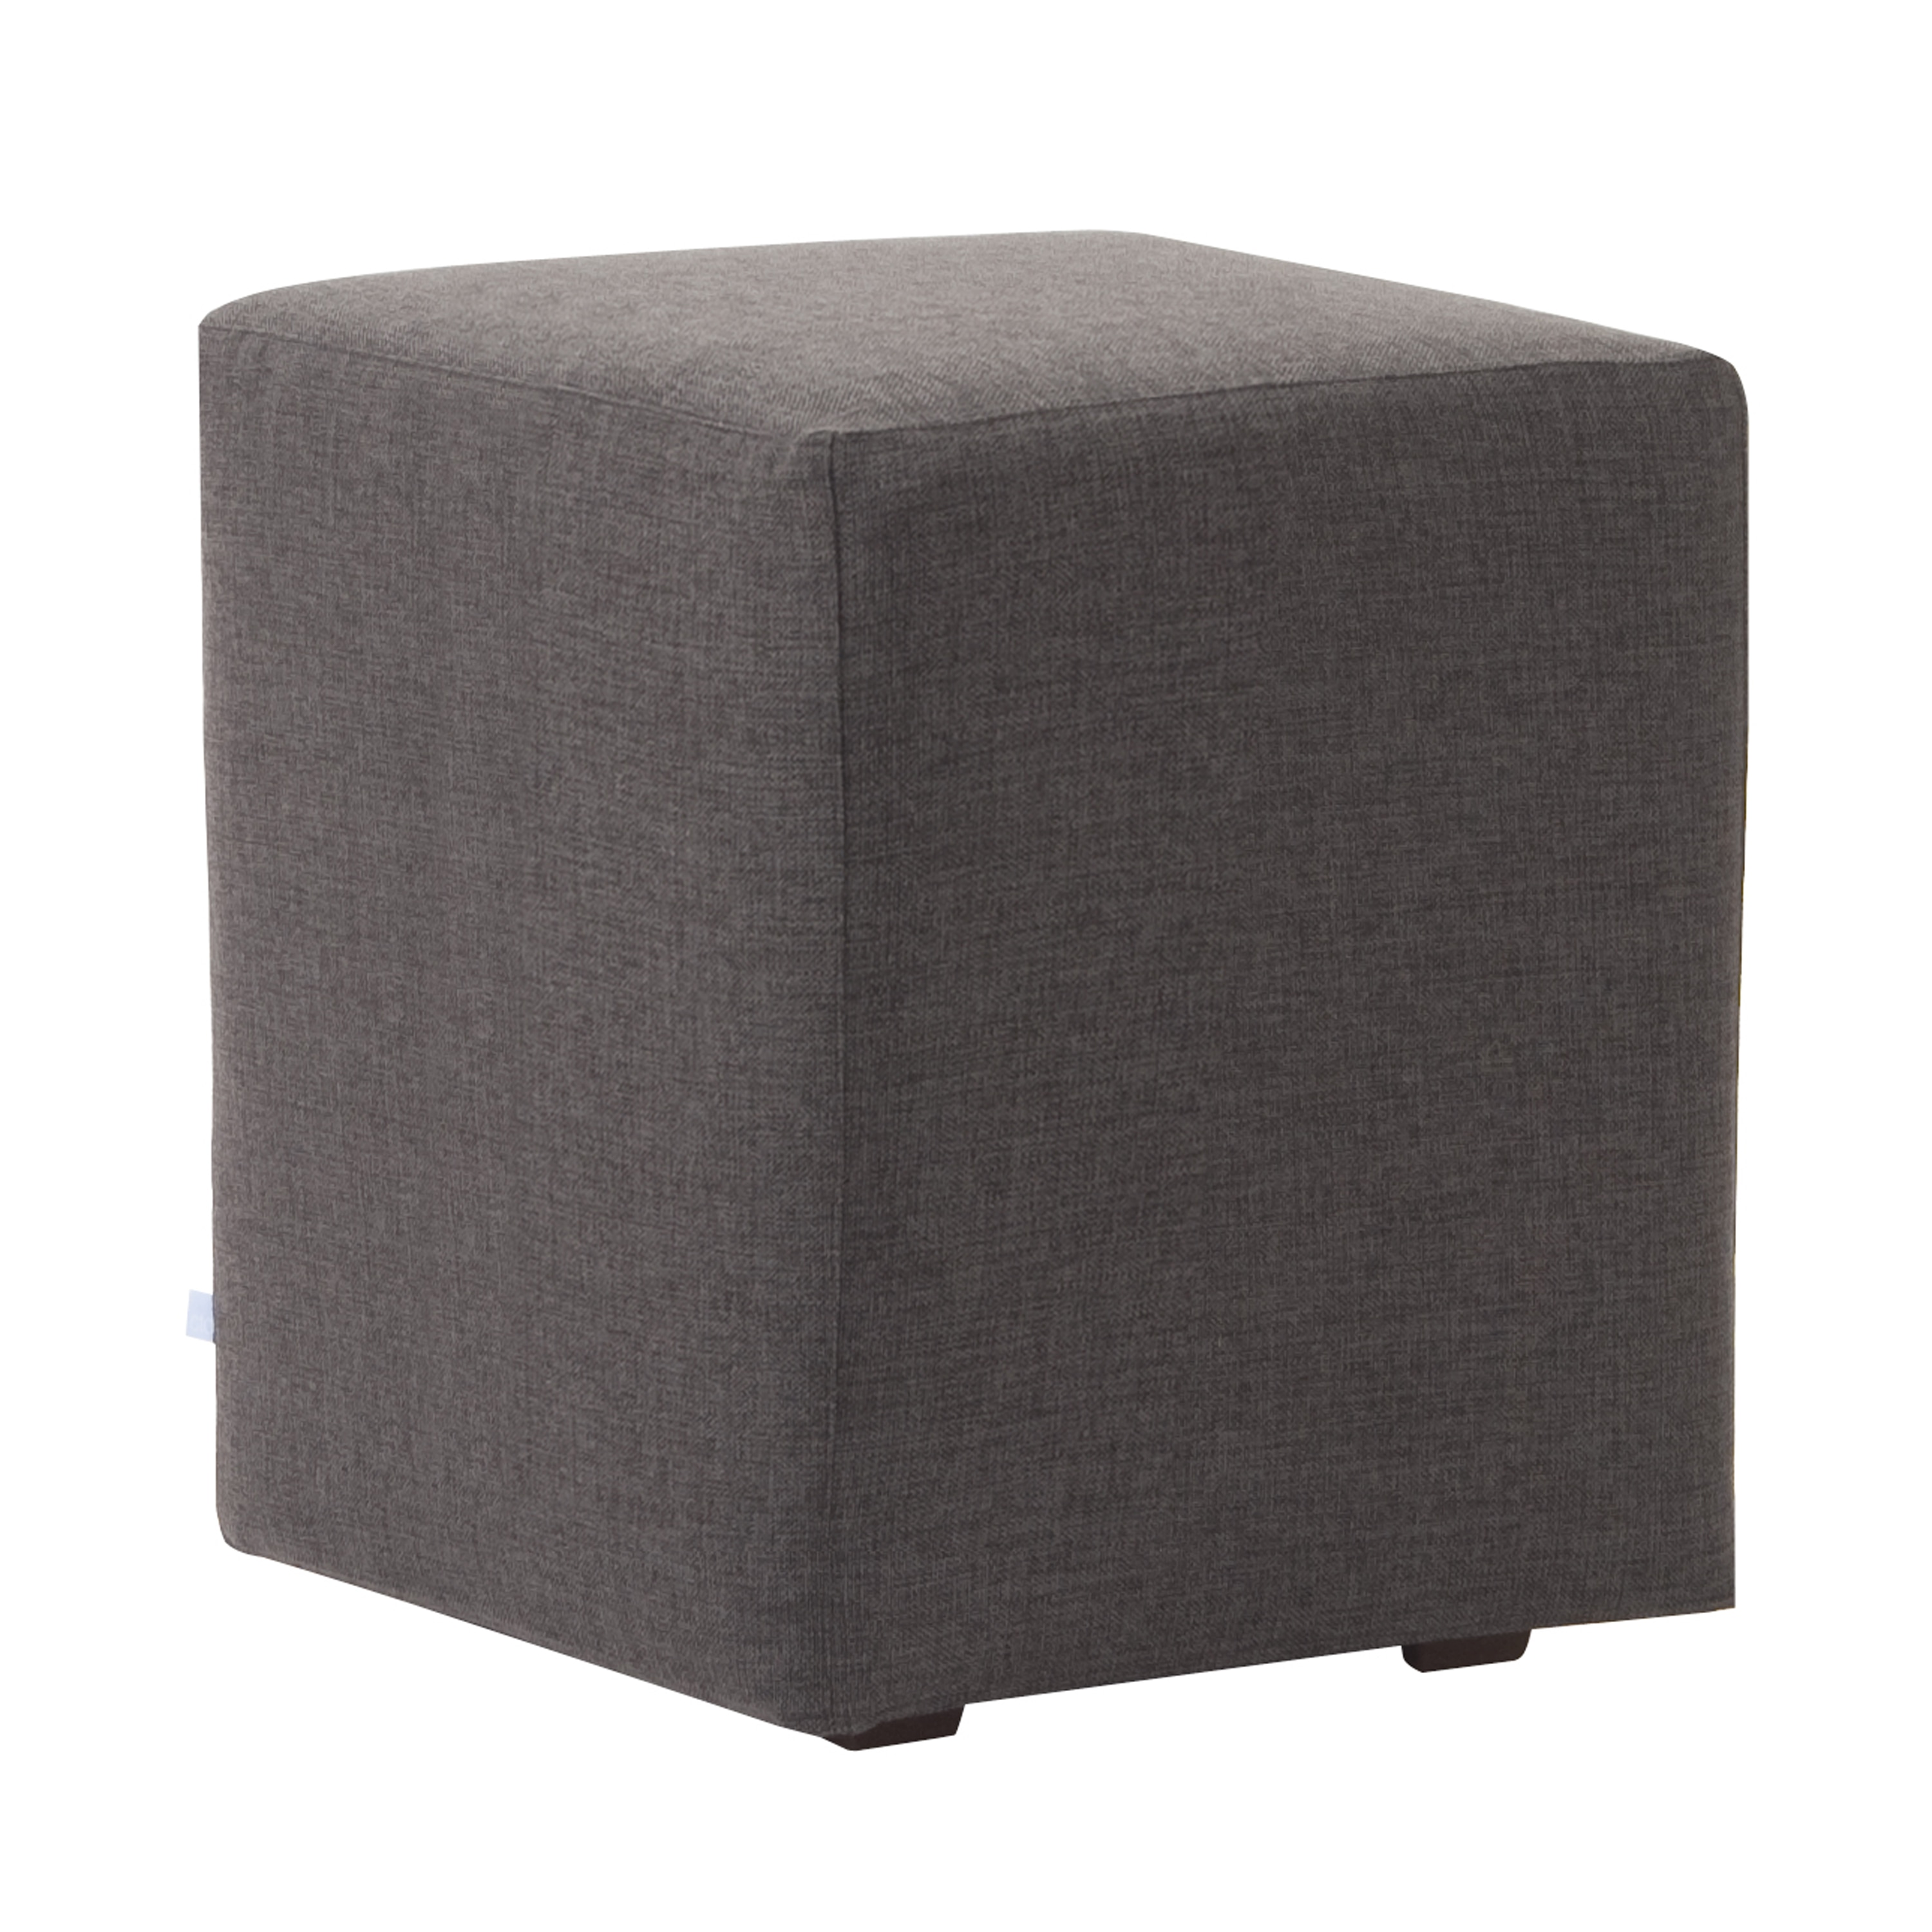 Graphite Slip Covered Cube Seat - Thumbnail 0